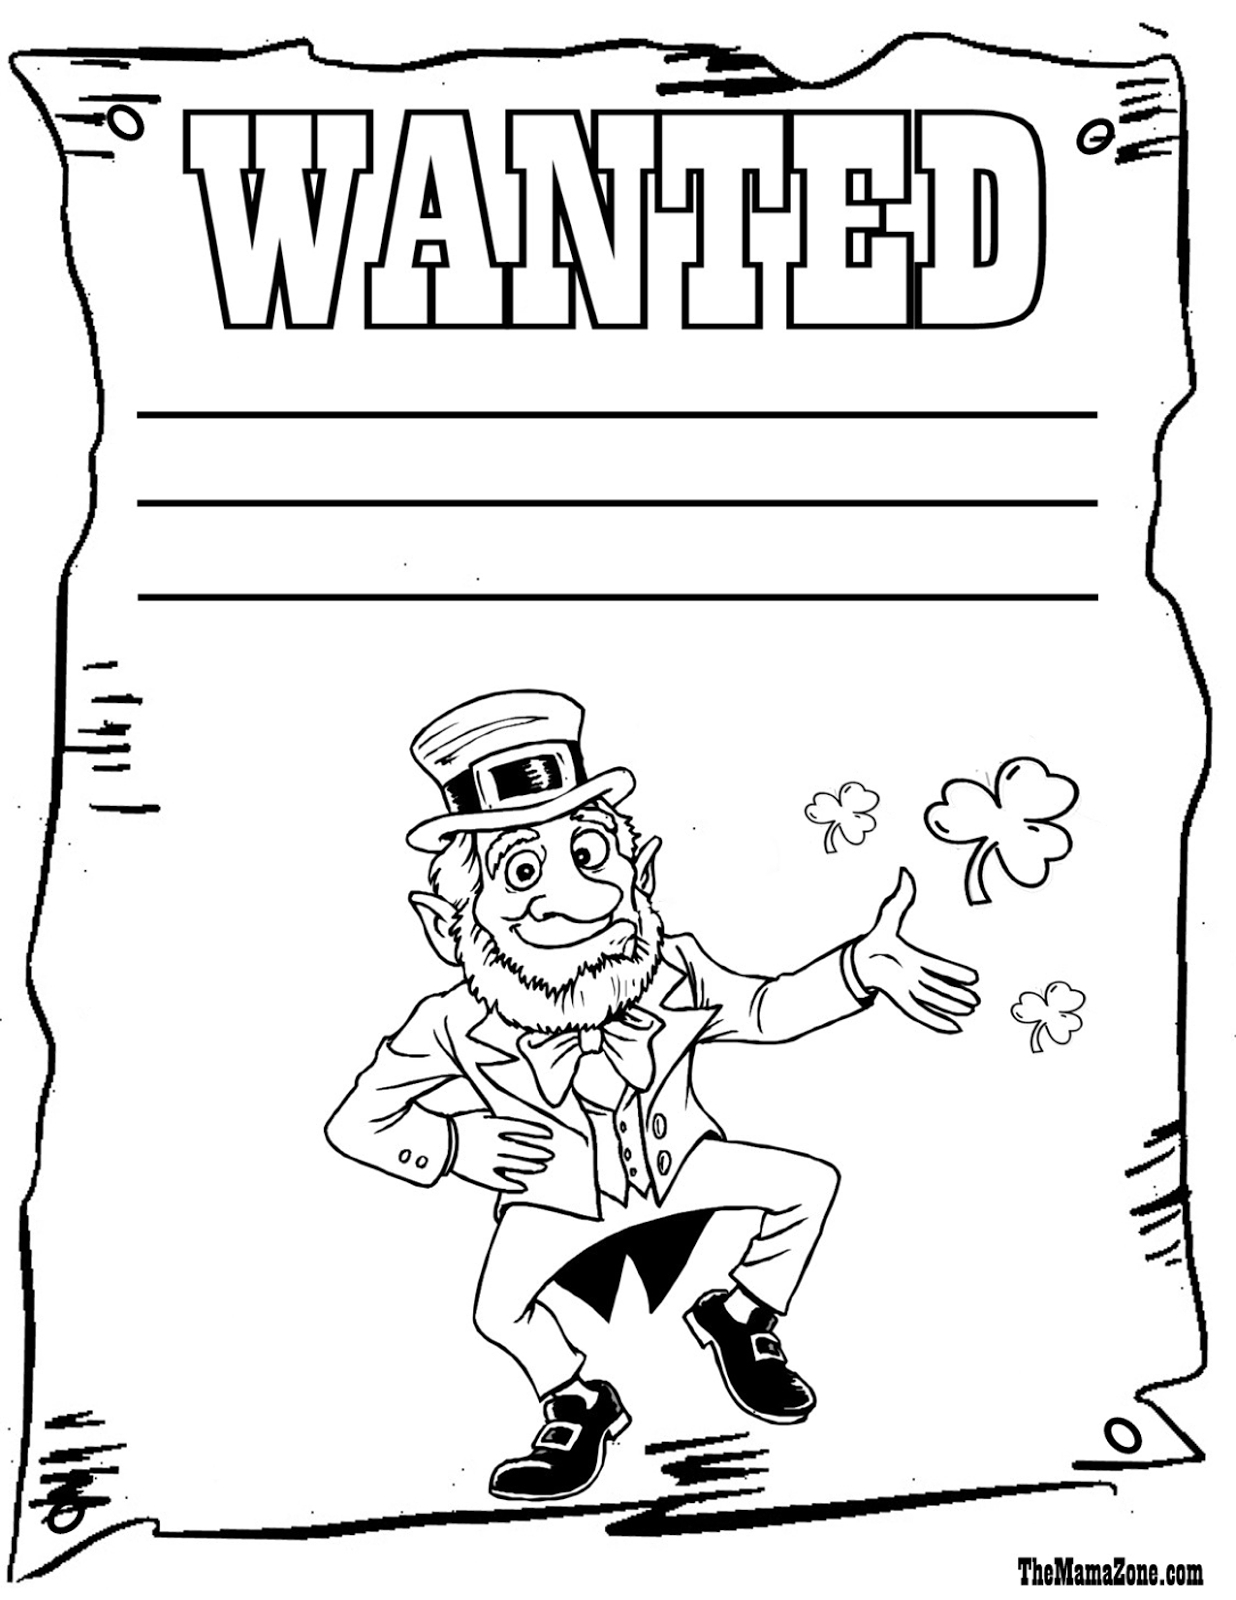 Leprechaun Coloring Pages Frugal Mom And Wife Free Printable St - Free Printable Saint Patrick Coloring Pages